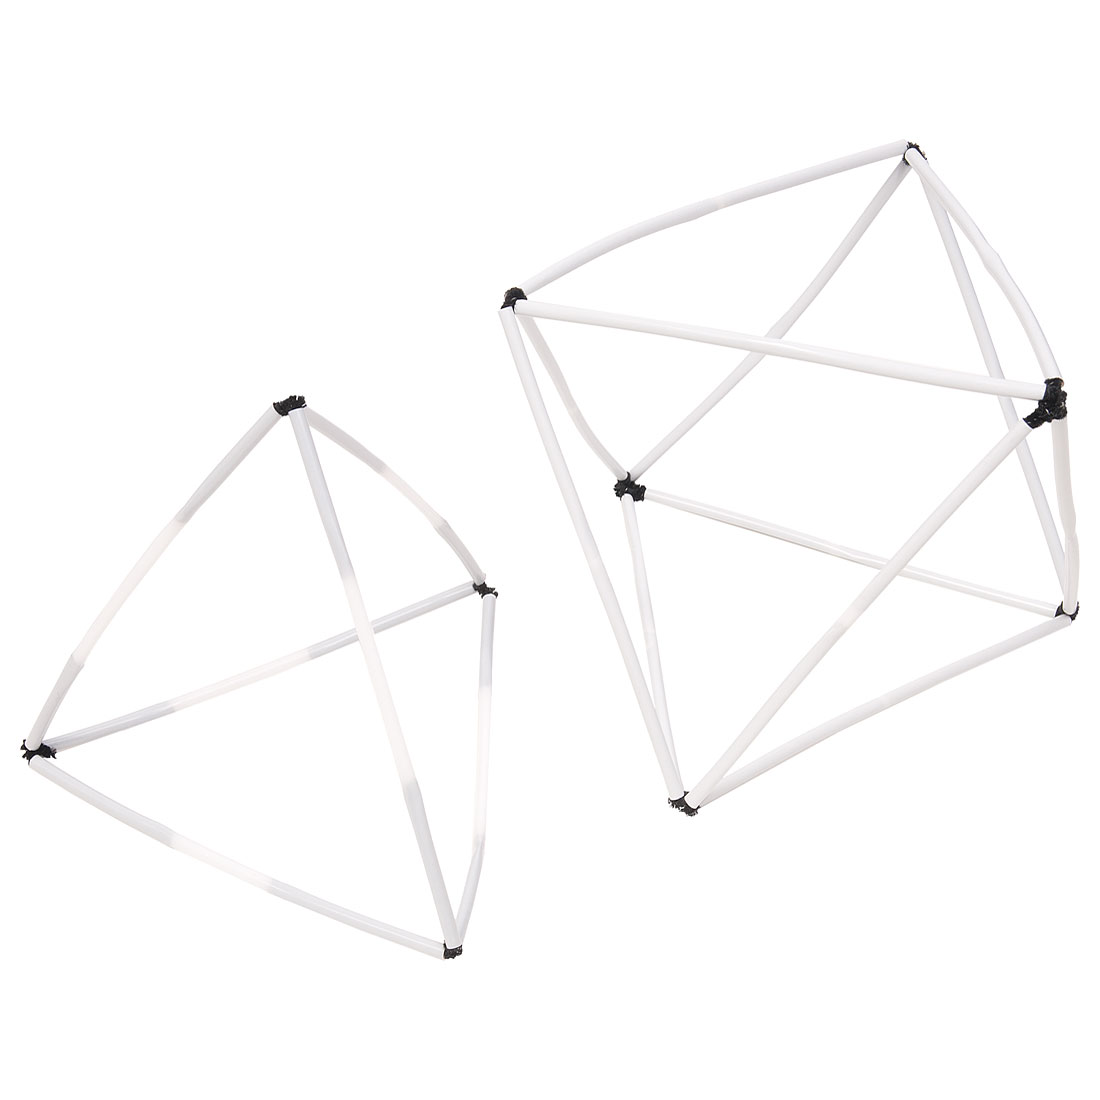 Art Straws for Structures (W52843)